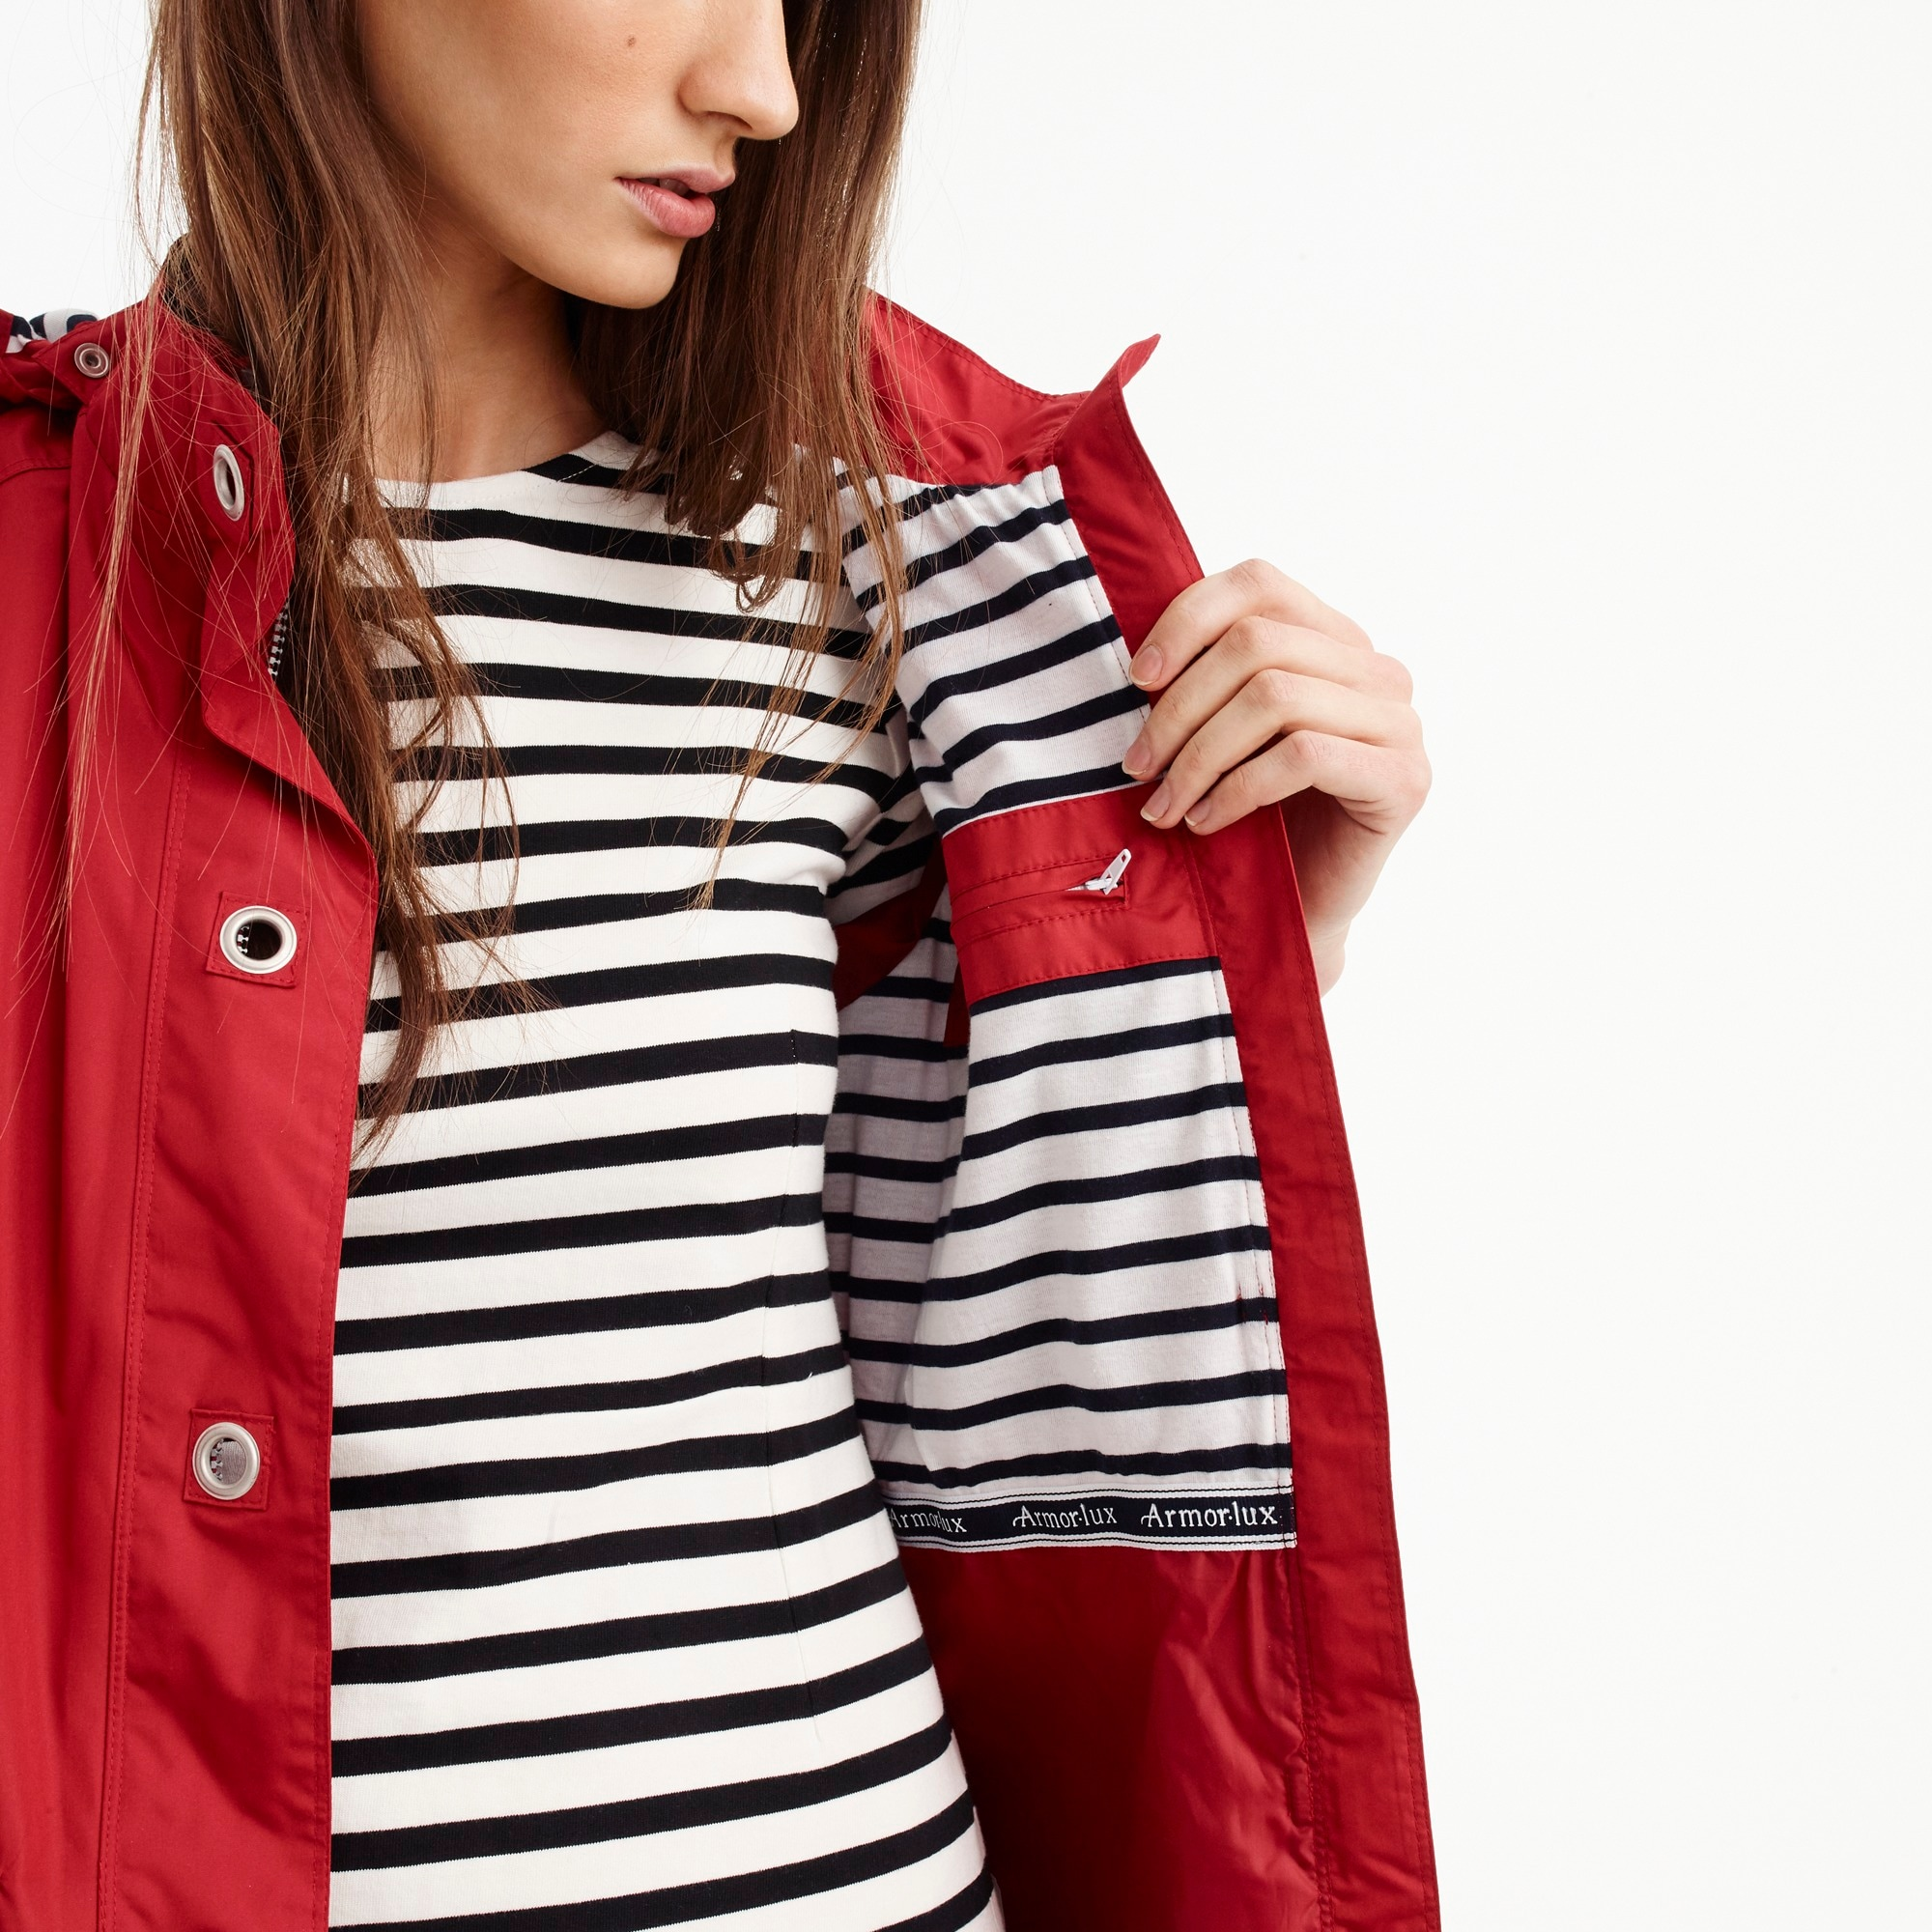 Armor-Lux® for J.Crew raincoat with striped lining